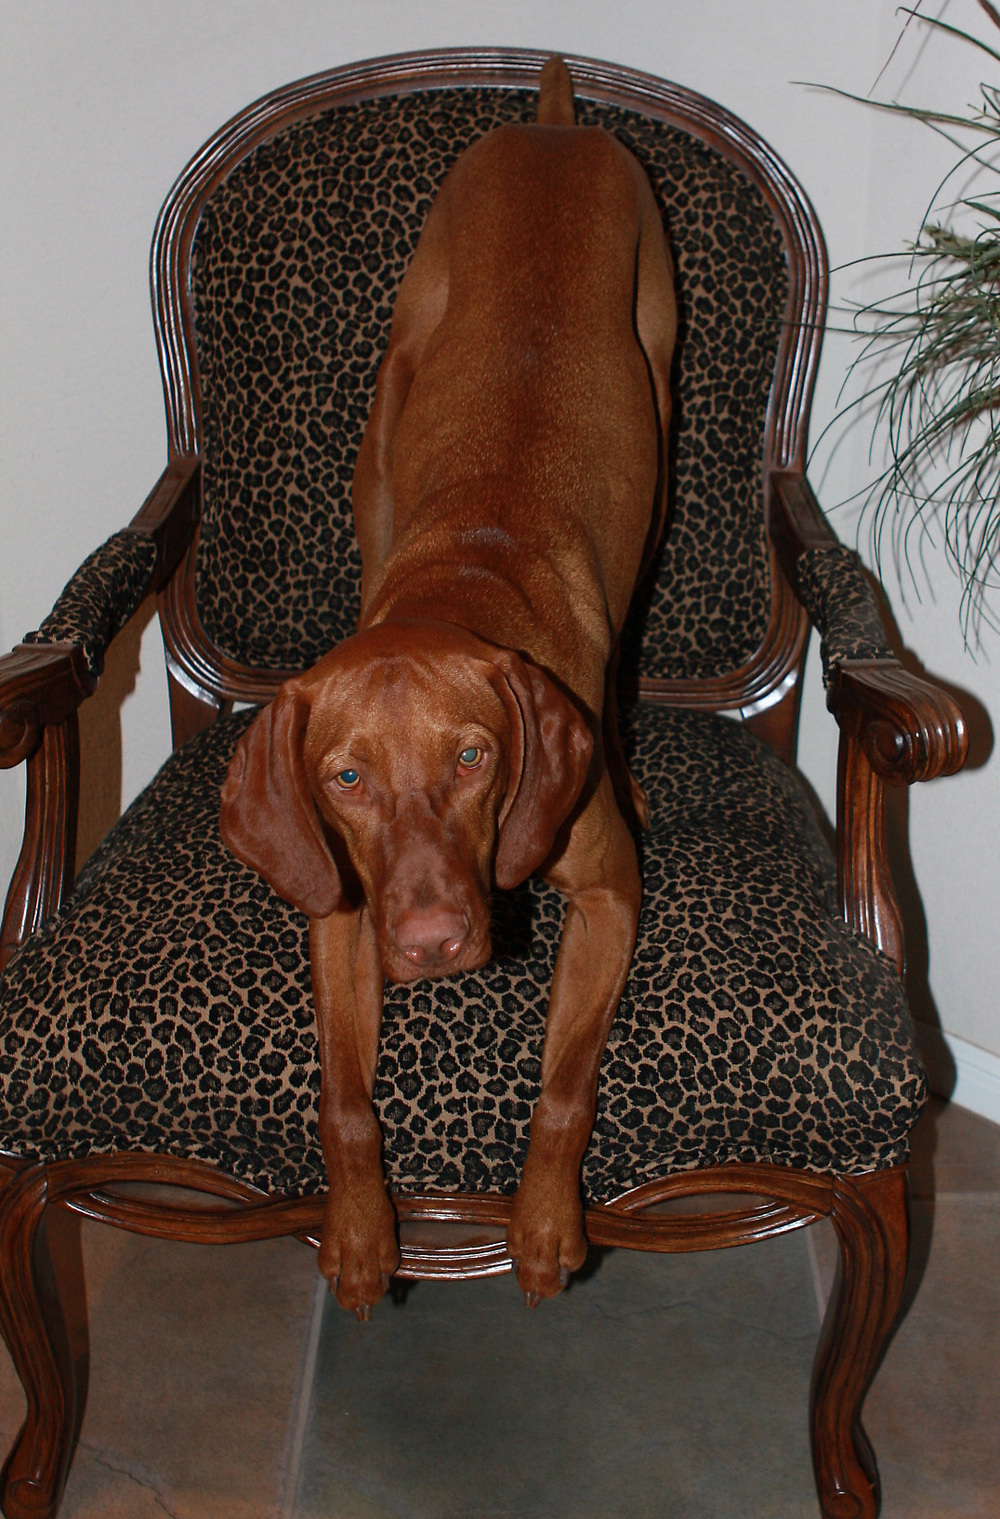 Tanner on Leopard Chair.jpg